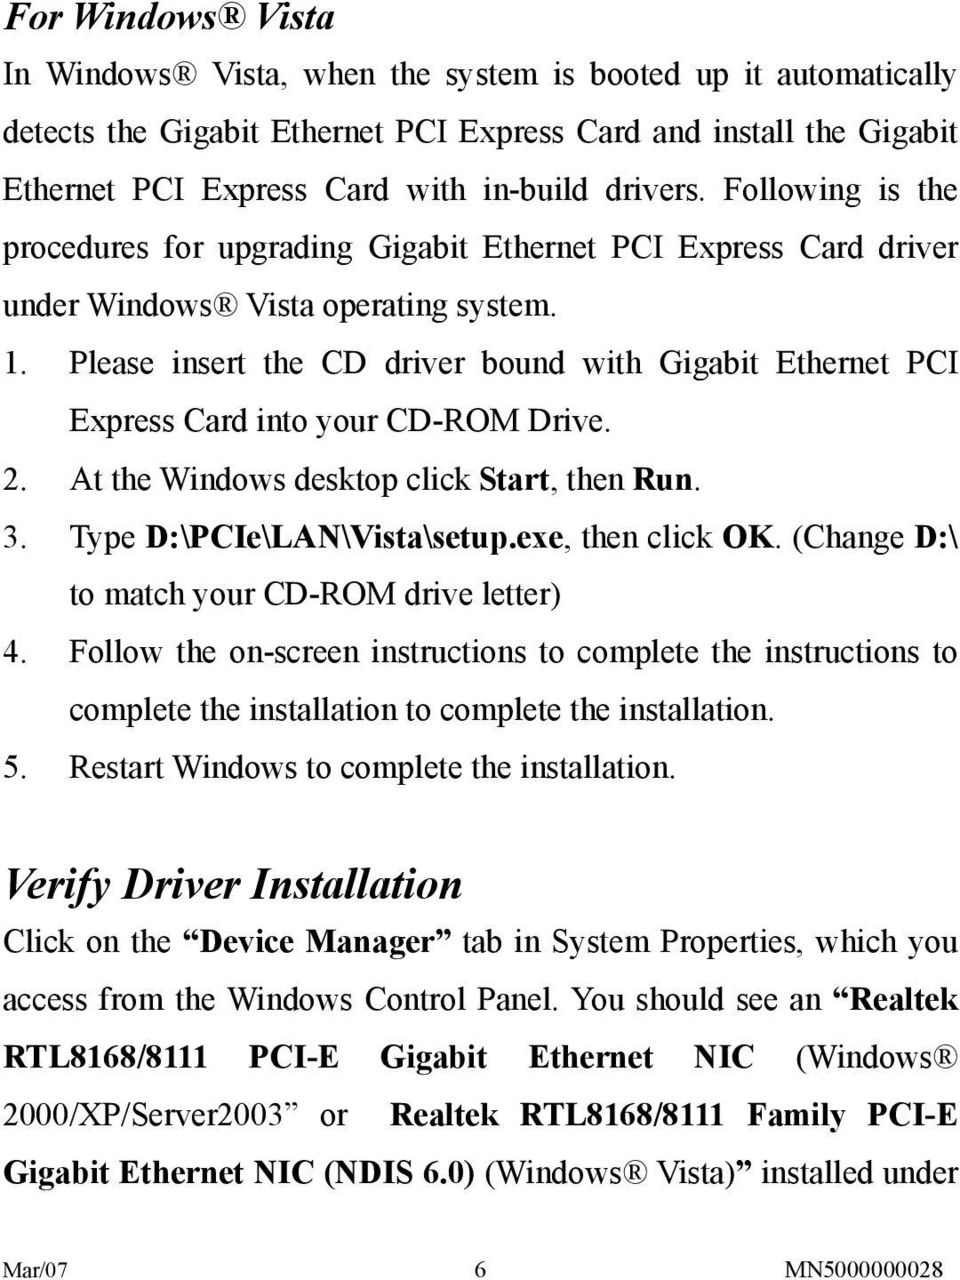 Please insert the CD driver bound with Gigabit Ethernet PCI Express Card into your CD-ROM Drive. 2. At the Windows desktop click Start, then Run. 3. Type D:\PCIe\LAN\Vista\setup.exe, then click OK.